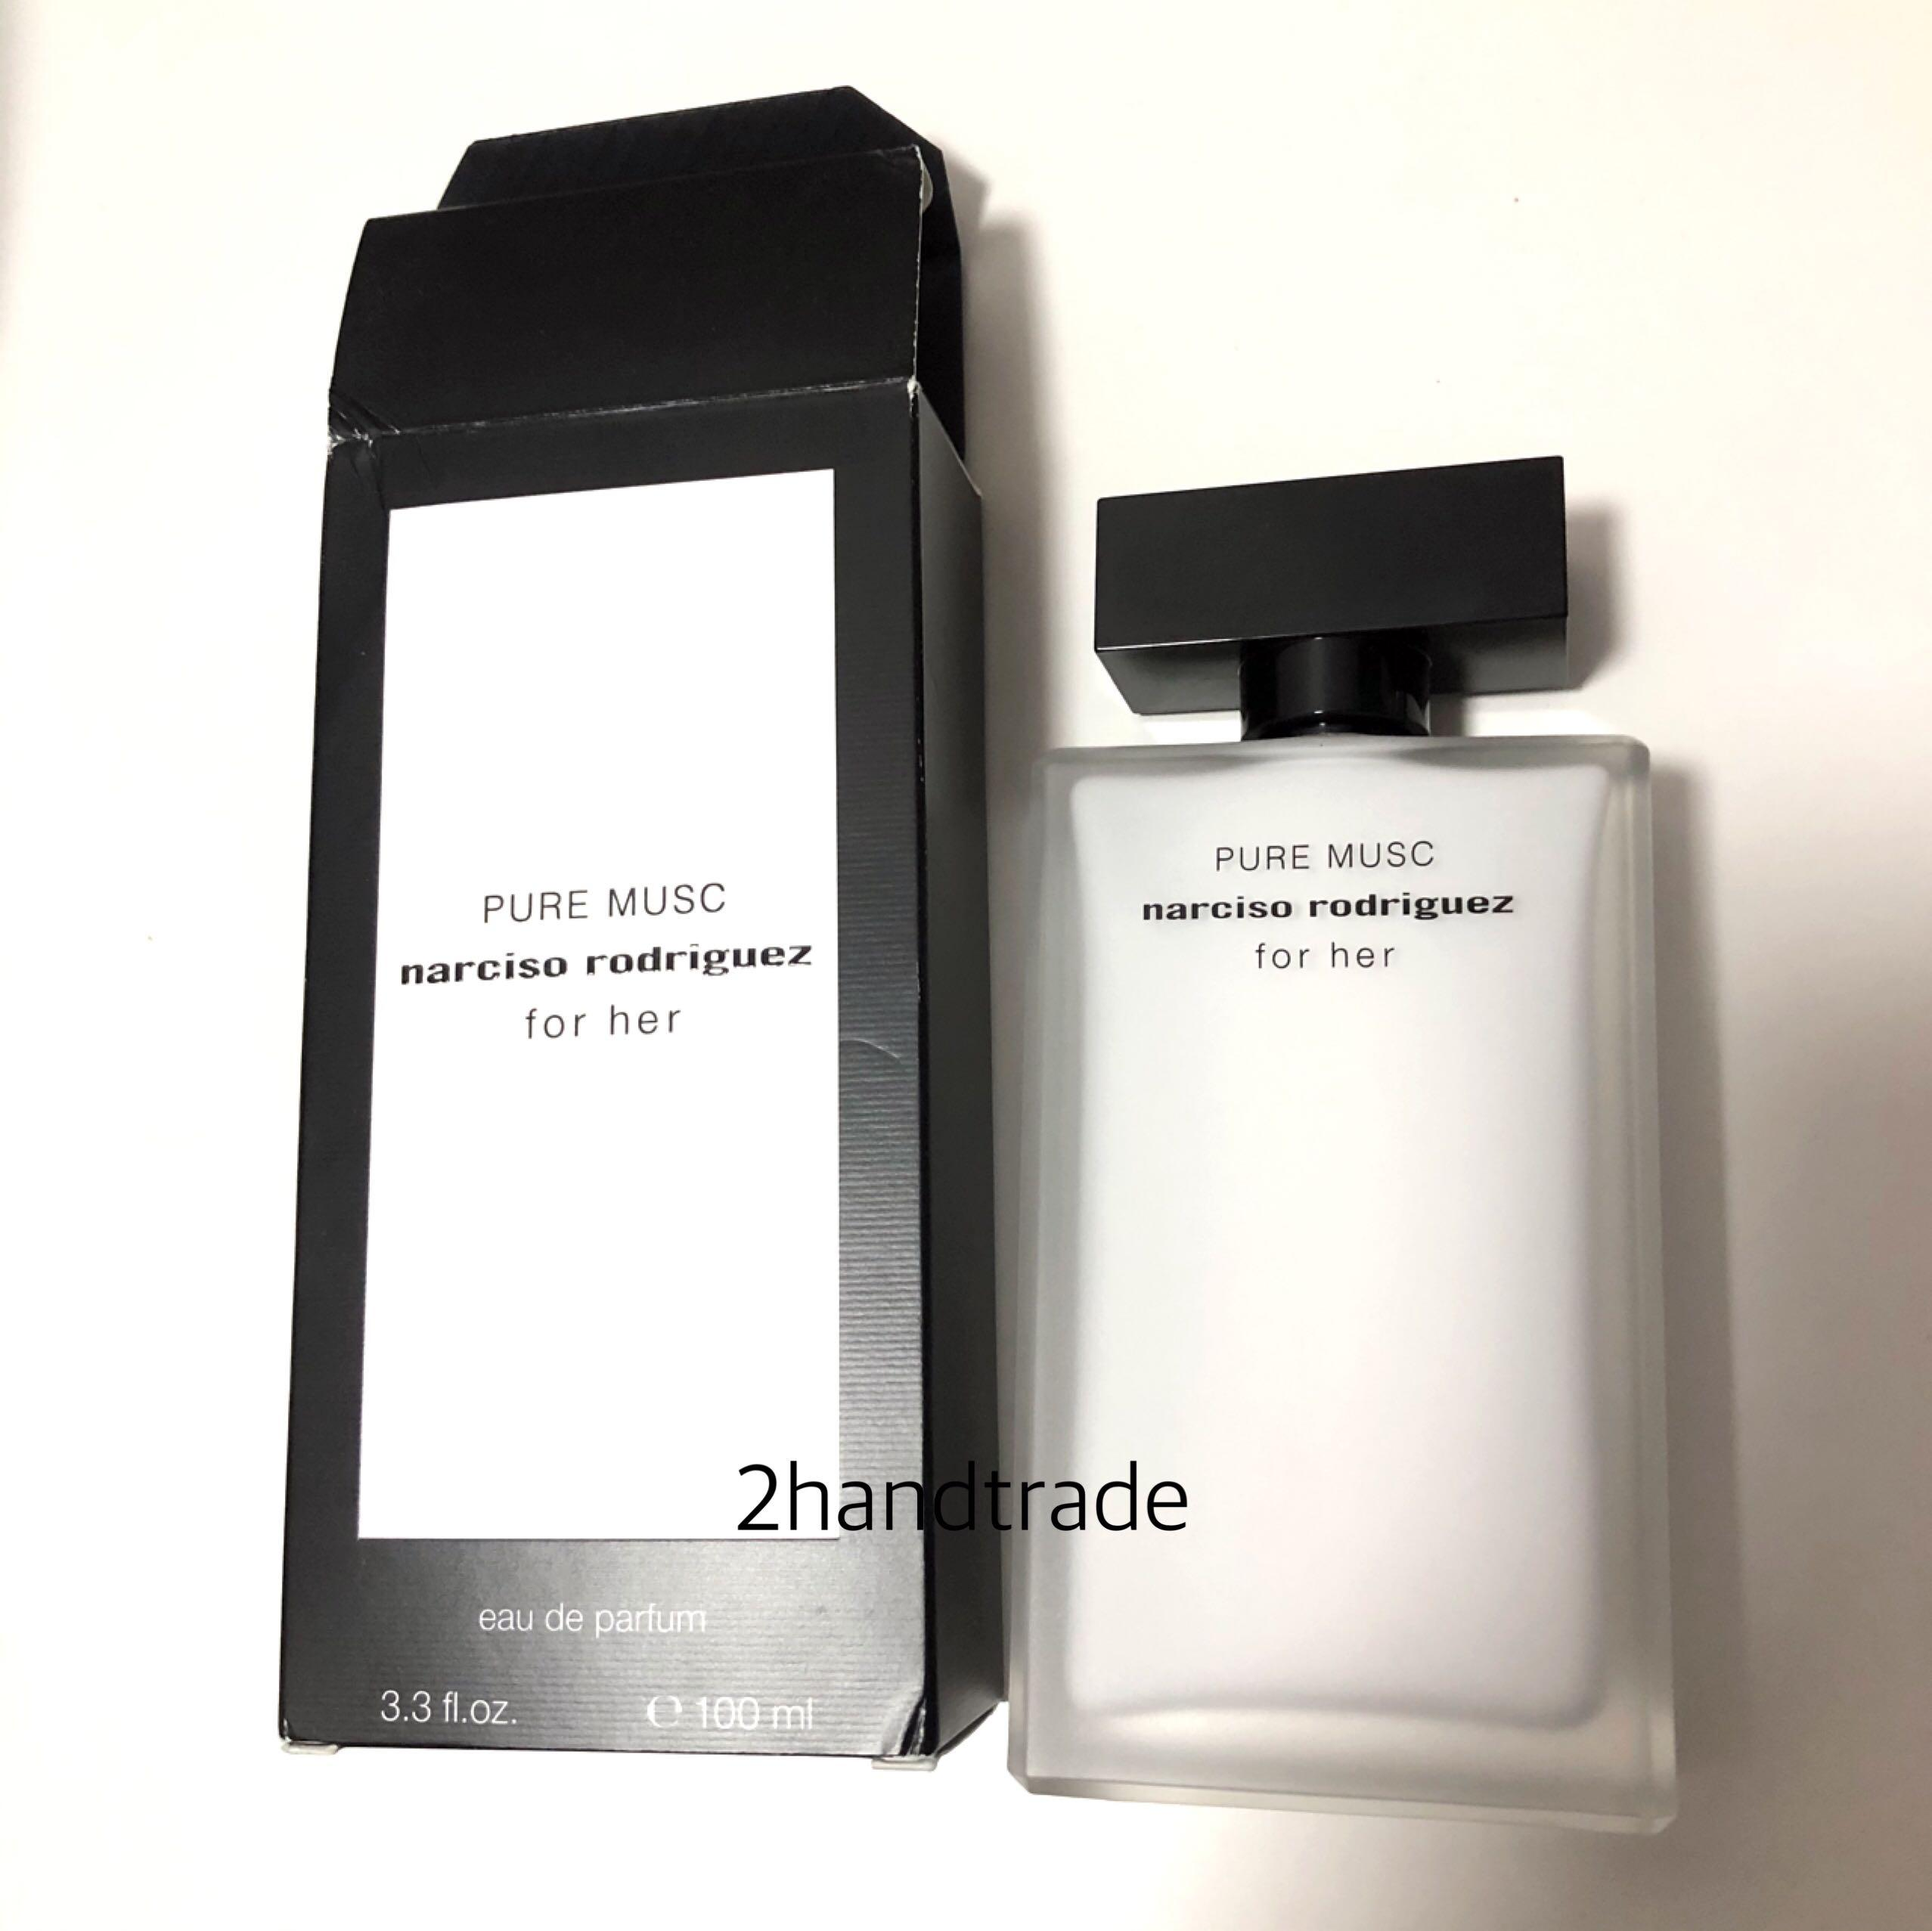 narciso rodriguez for her PURE MUSC淡香精 100ml